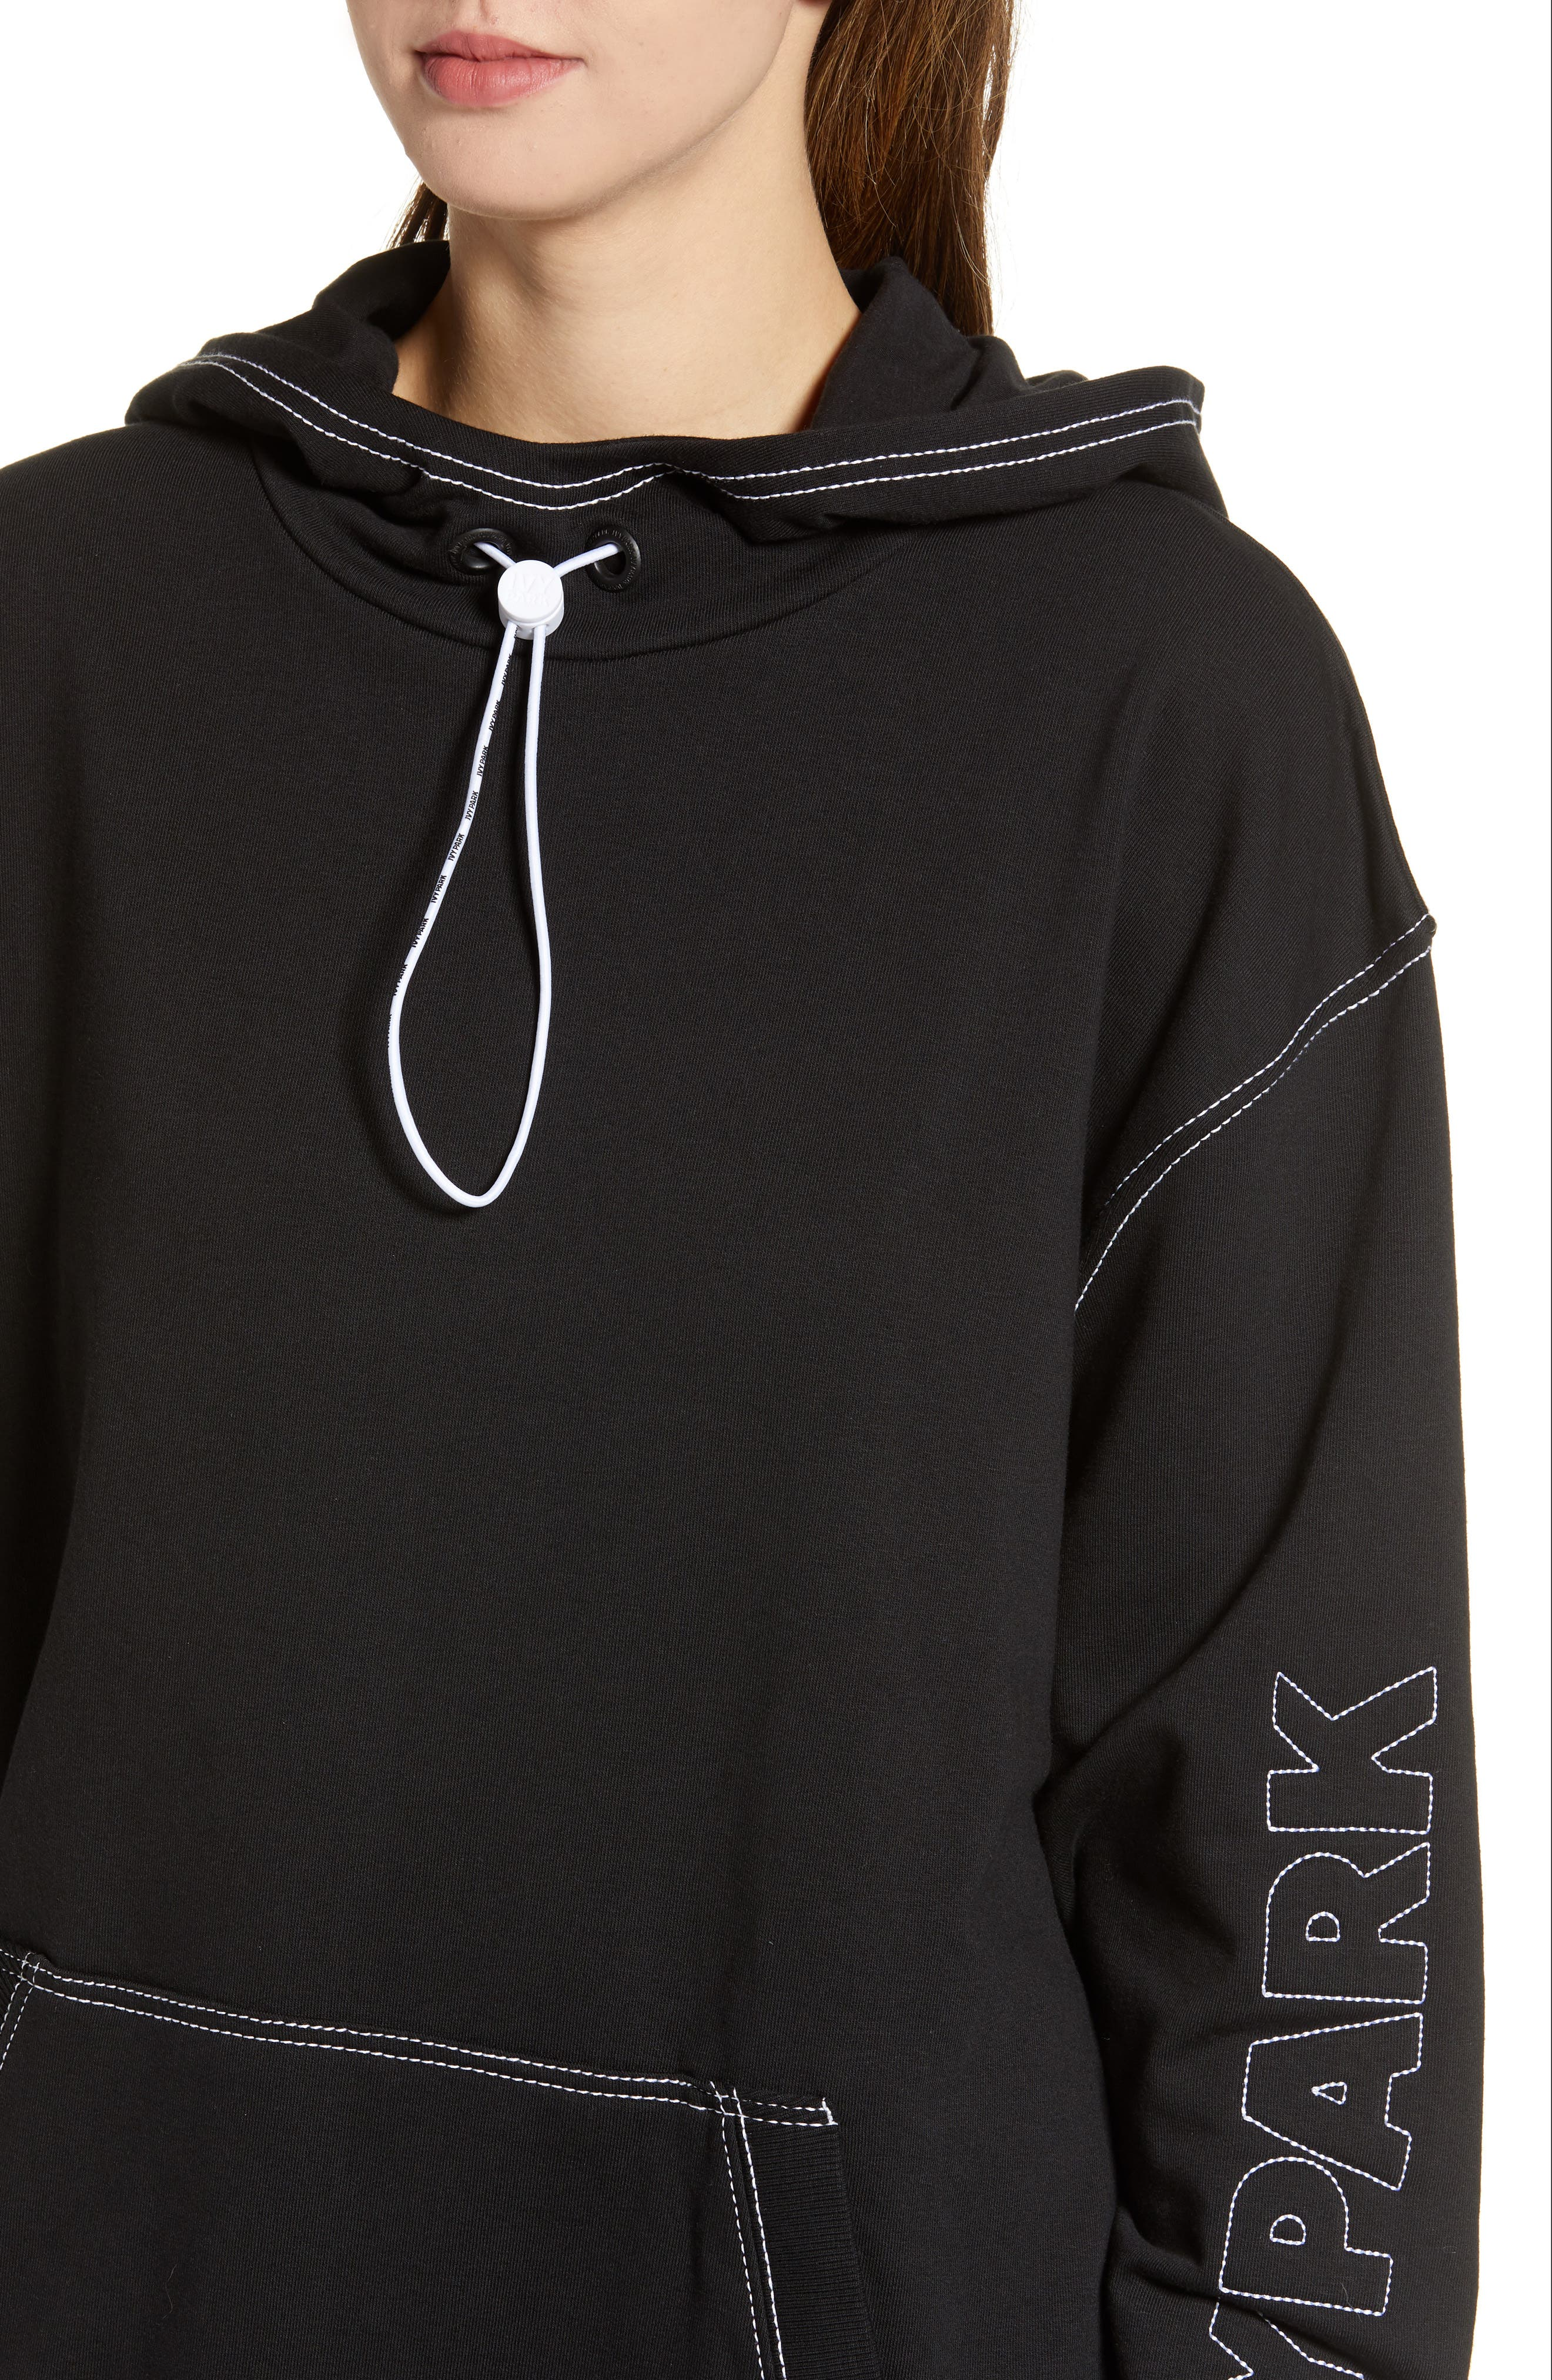 IVY PARK<SUP>®</SUP>, Stab Stitch Hoodie, Alternate thumbnail 5, color, 002